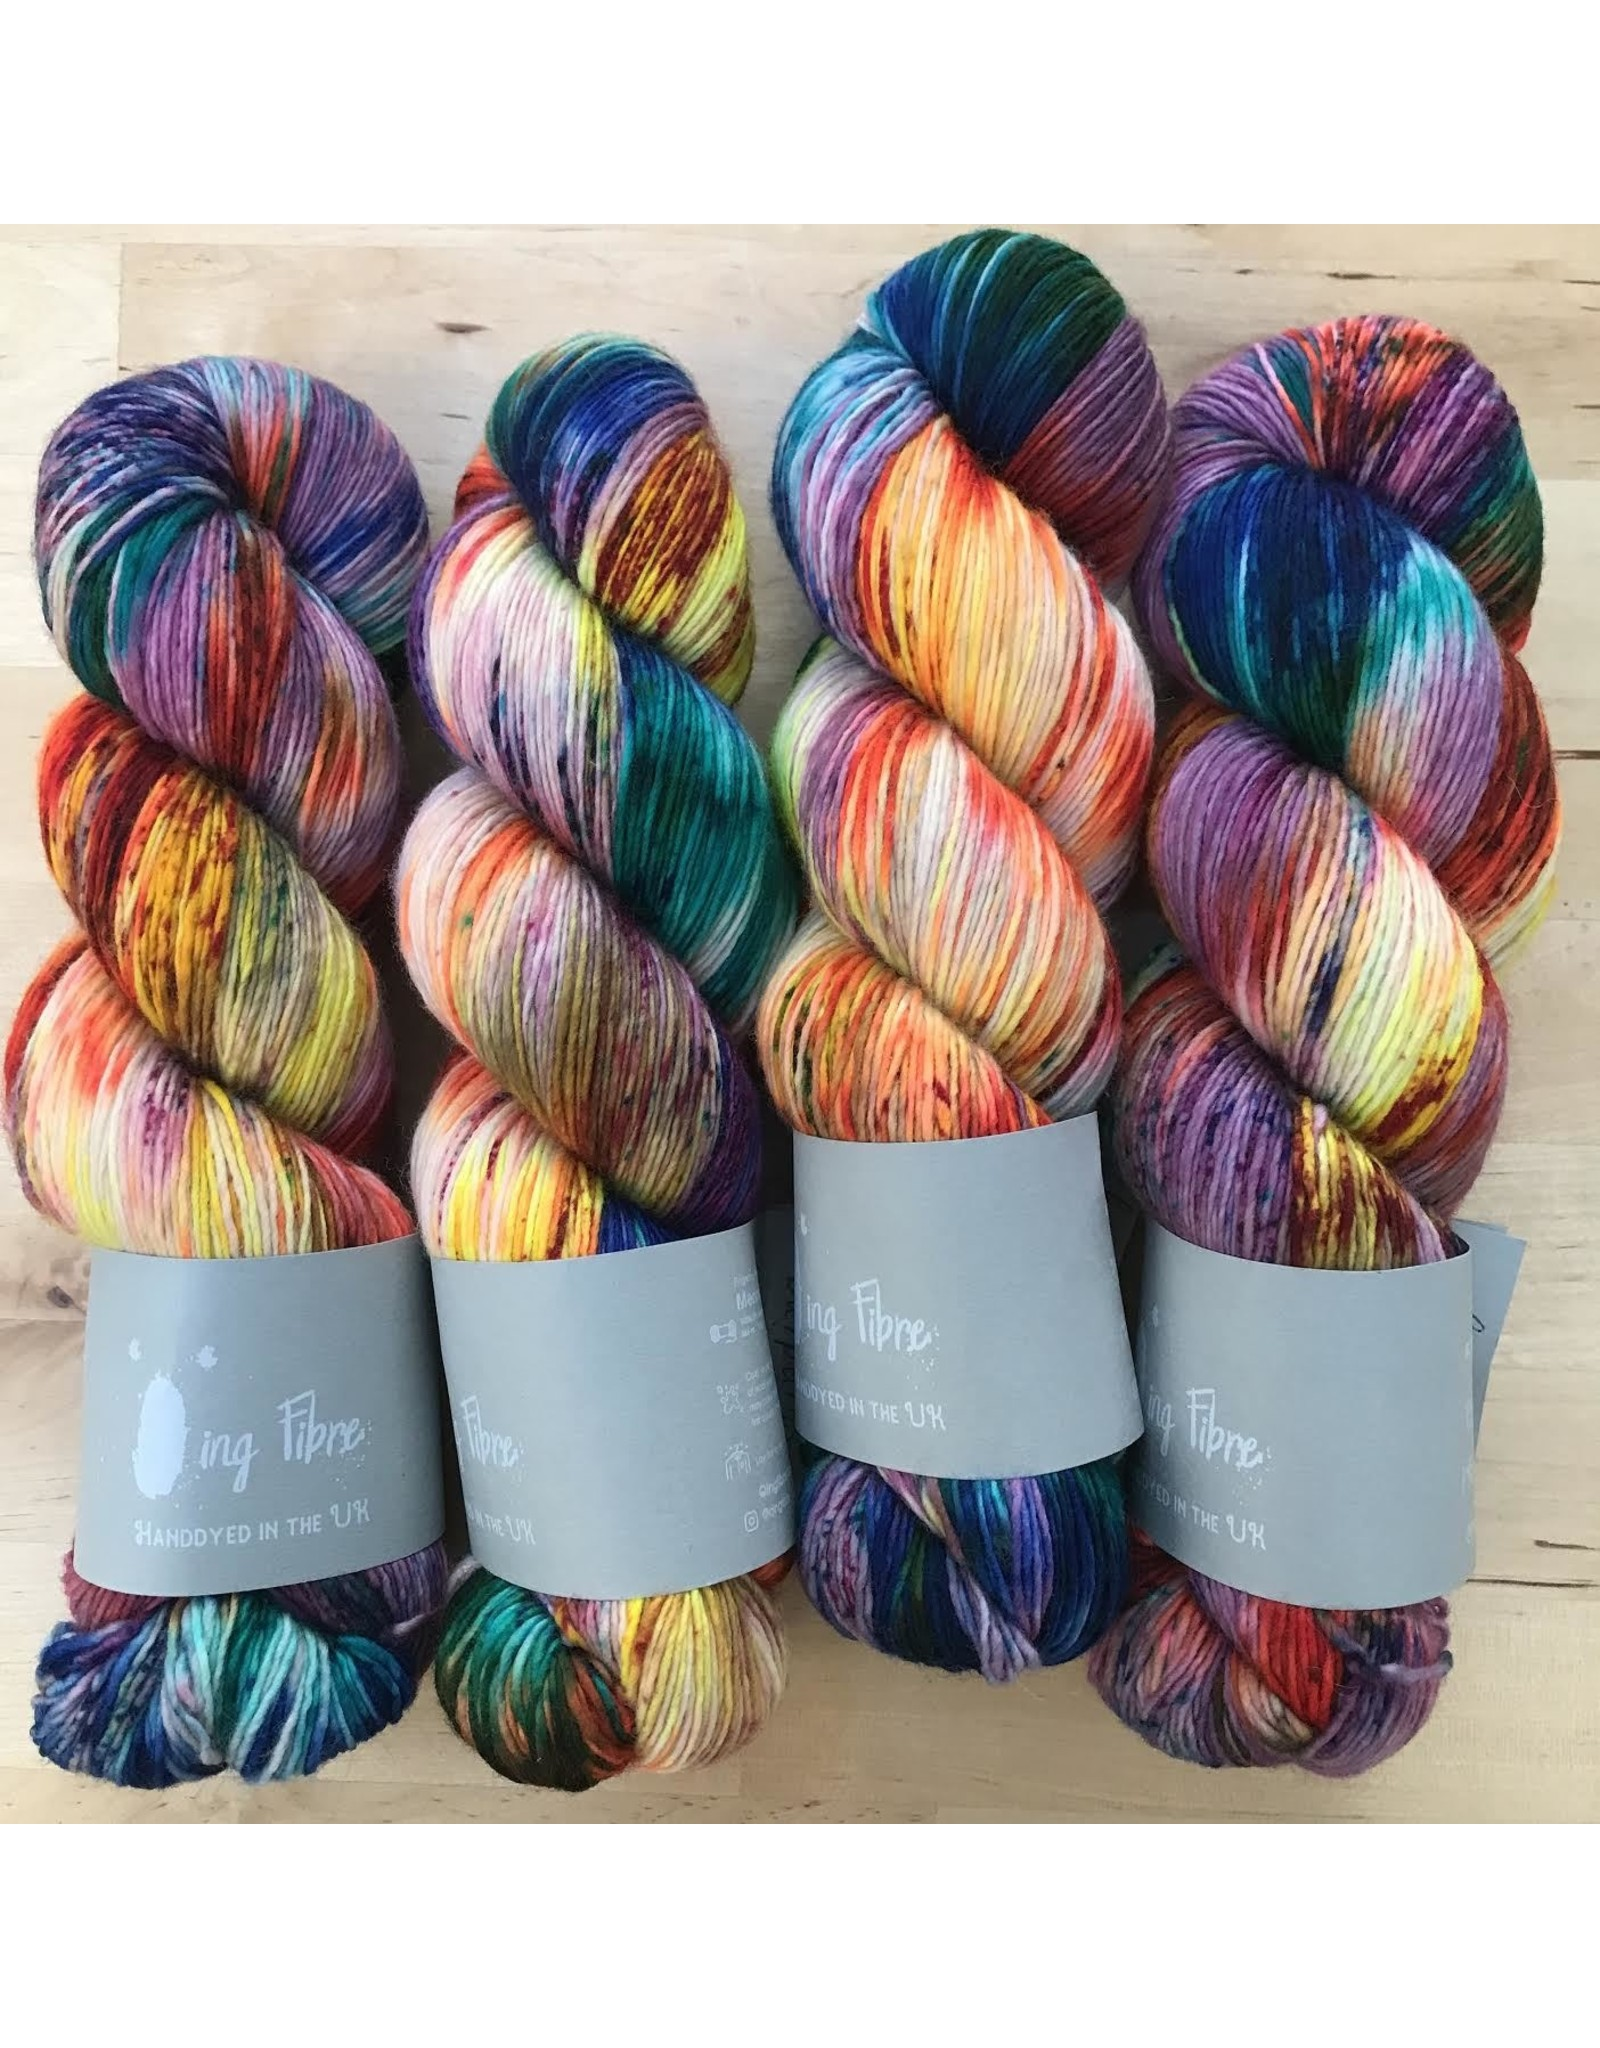 Qing Fibre Shindig - Merino Single - Qing Fibre